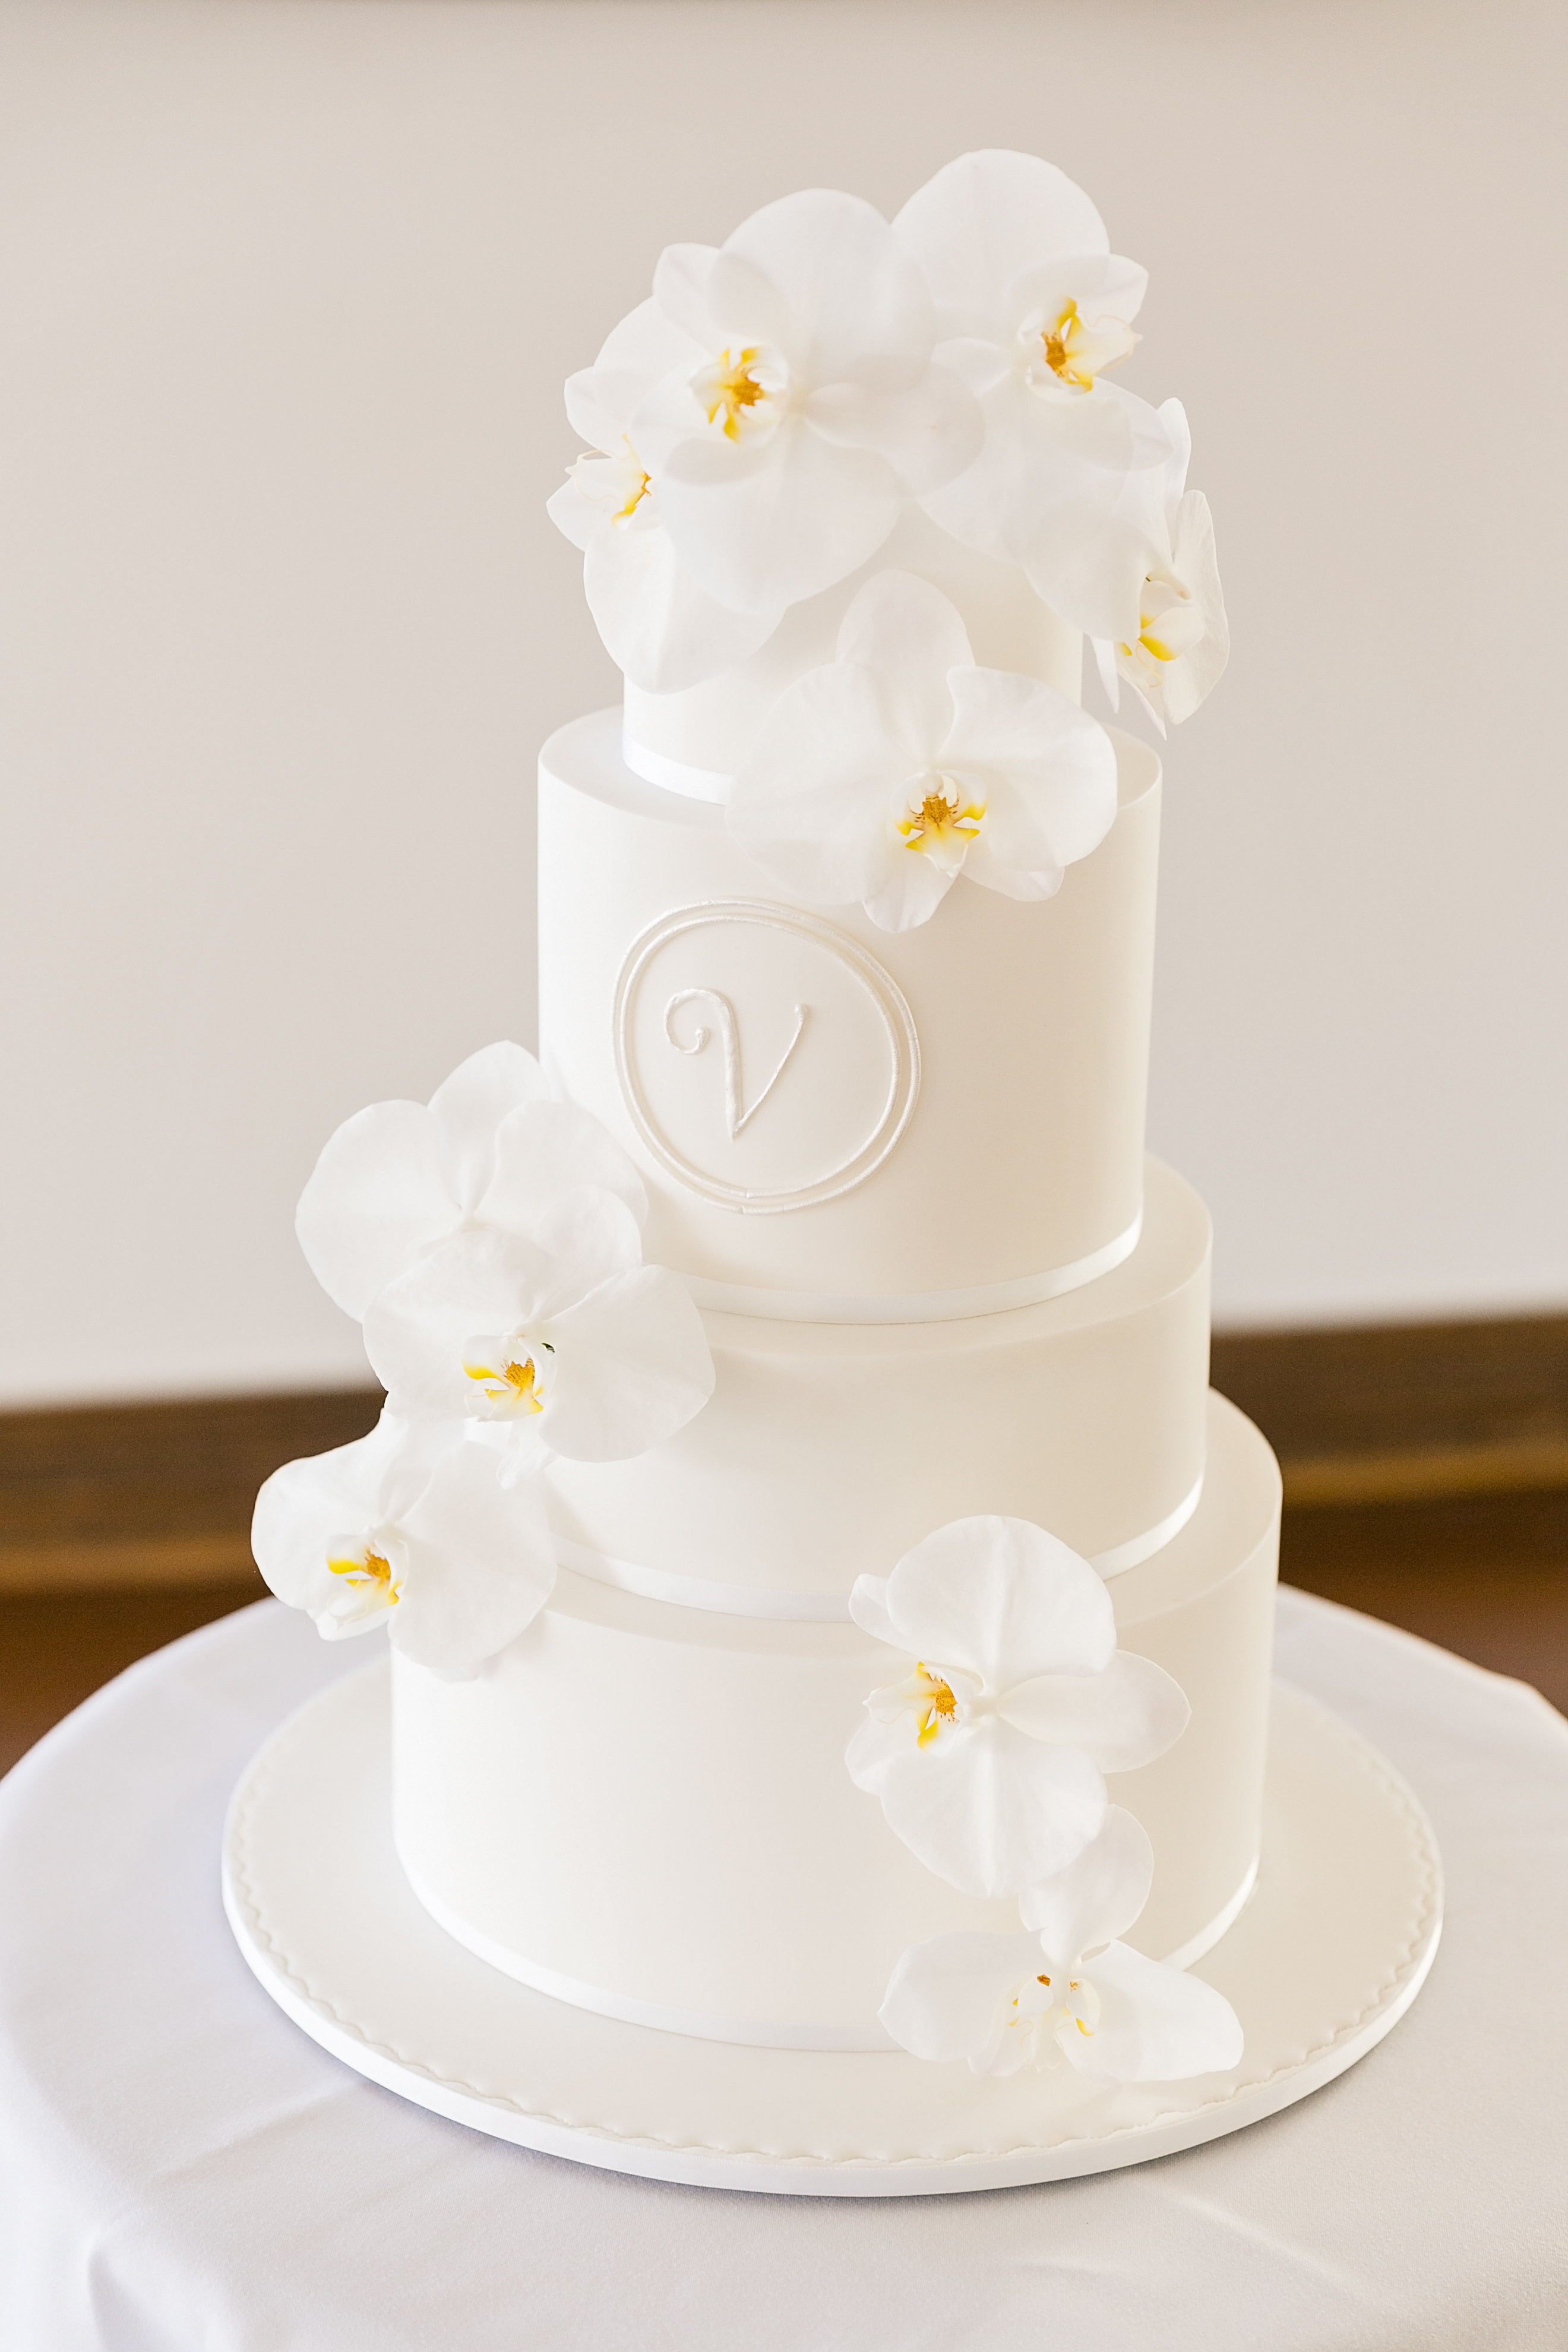 Wedding cake featuring orchid blooms